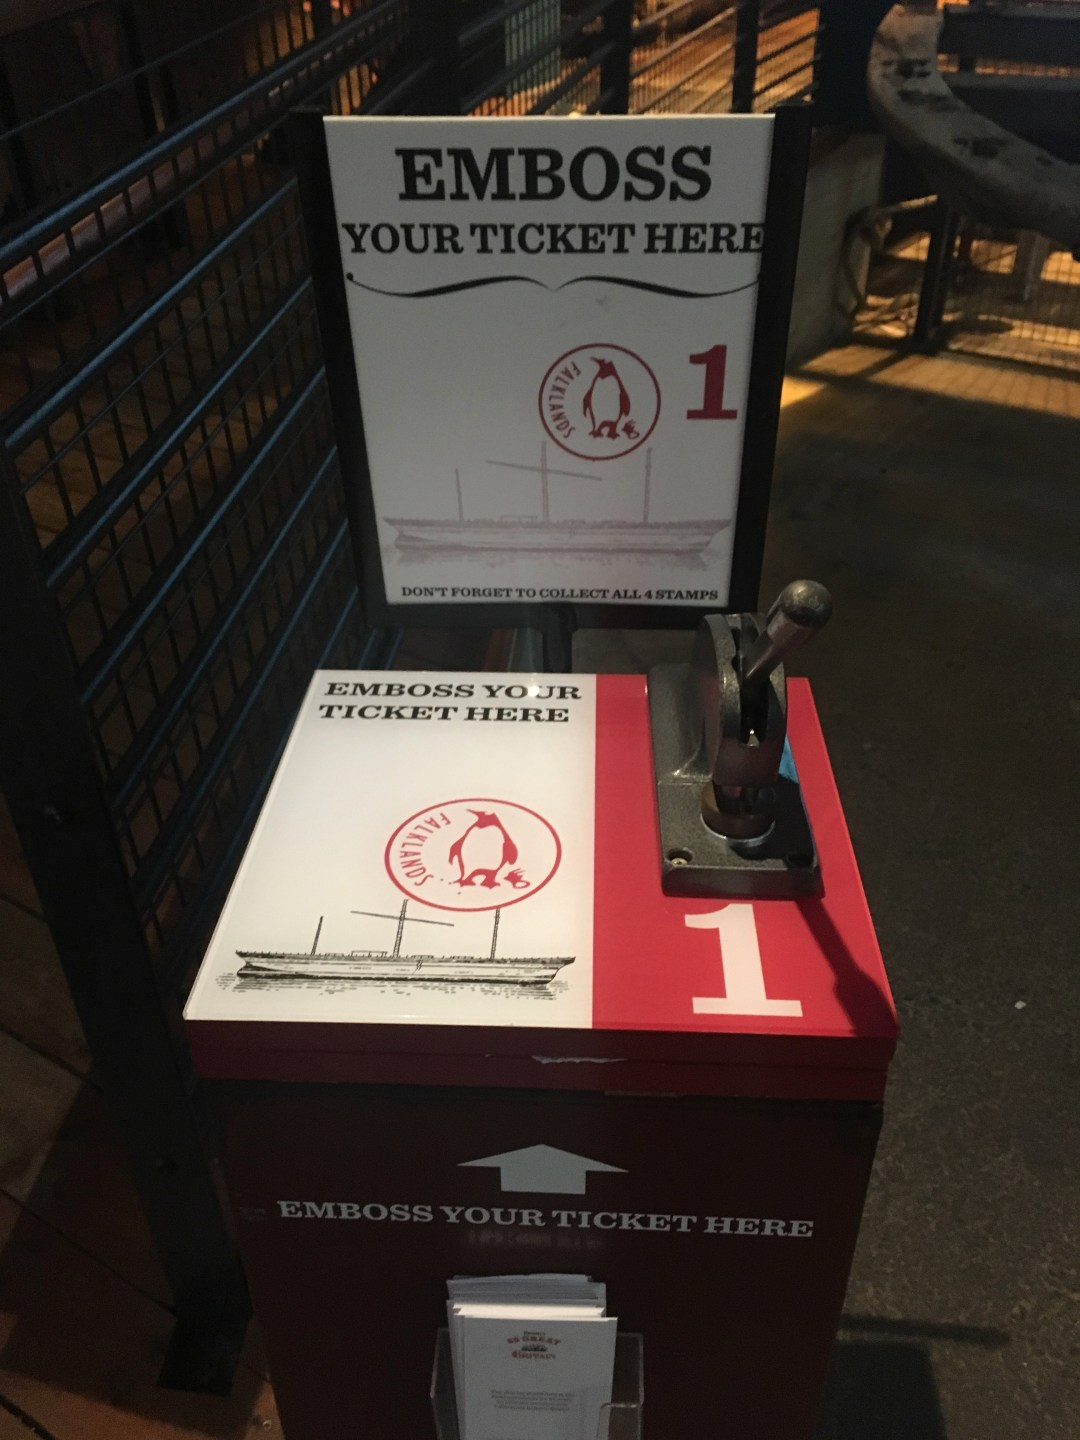 Machine that embosses tickets as a souvenir in museum